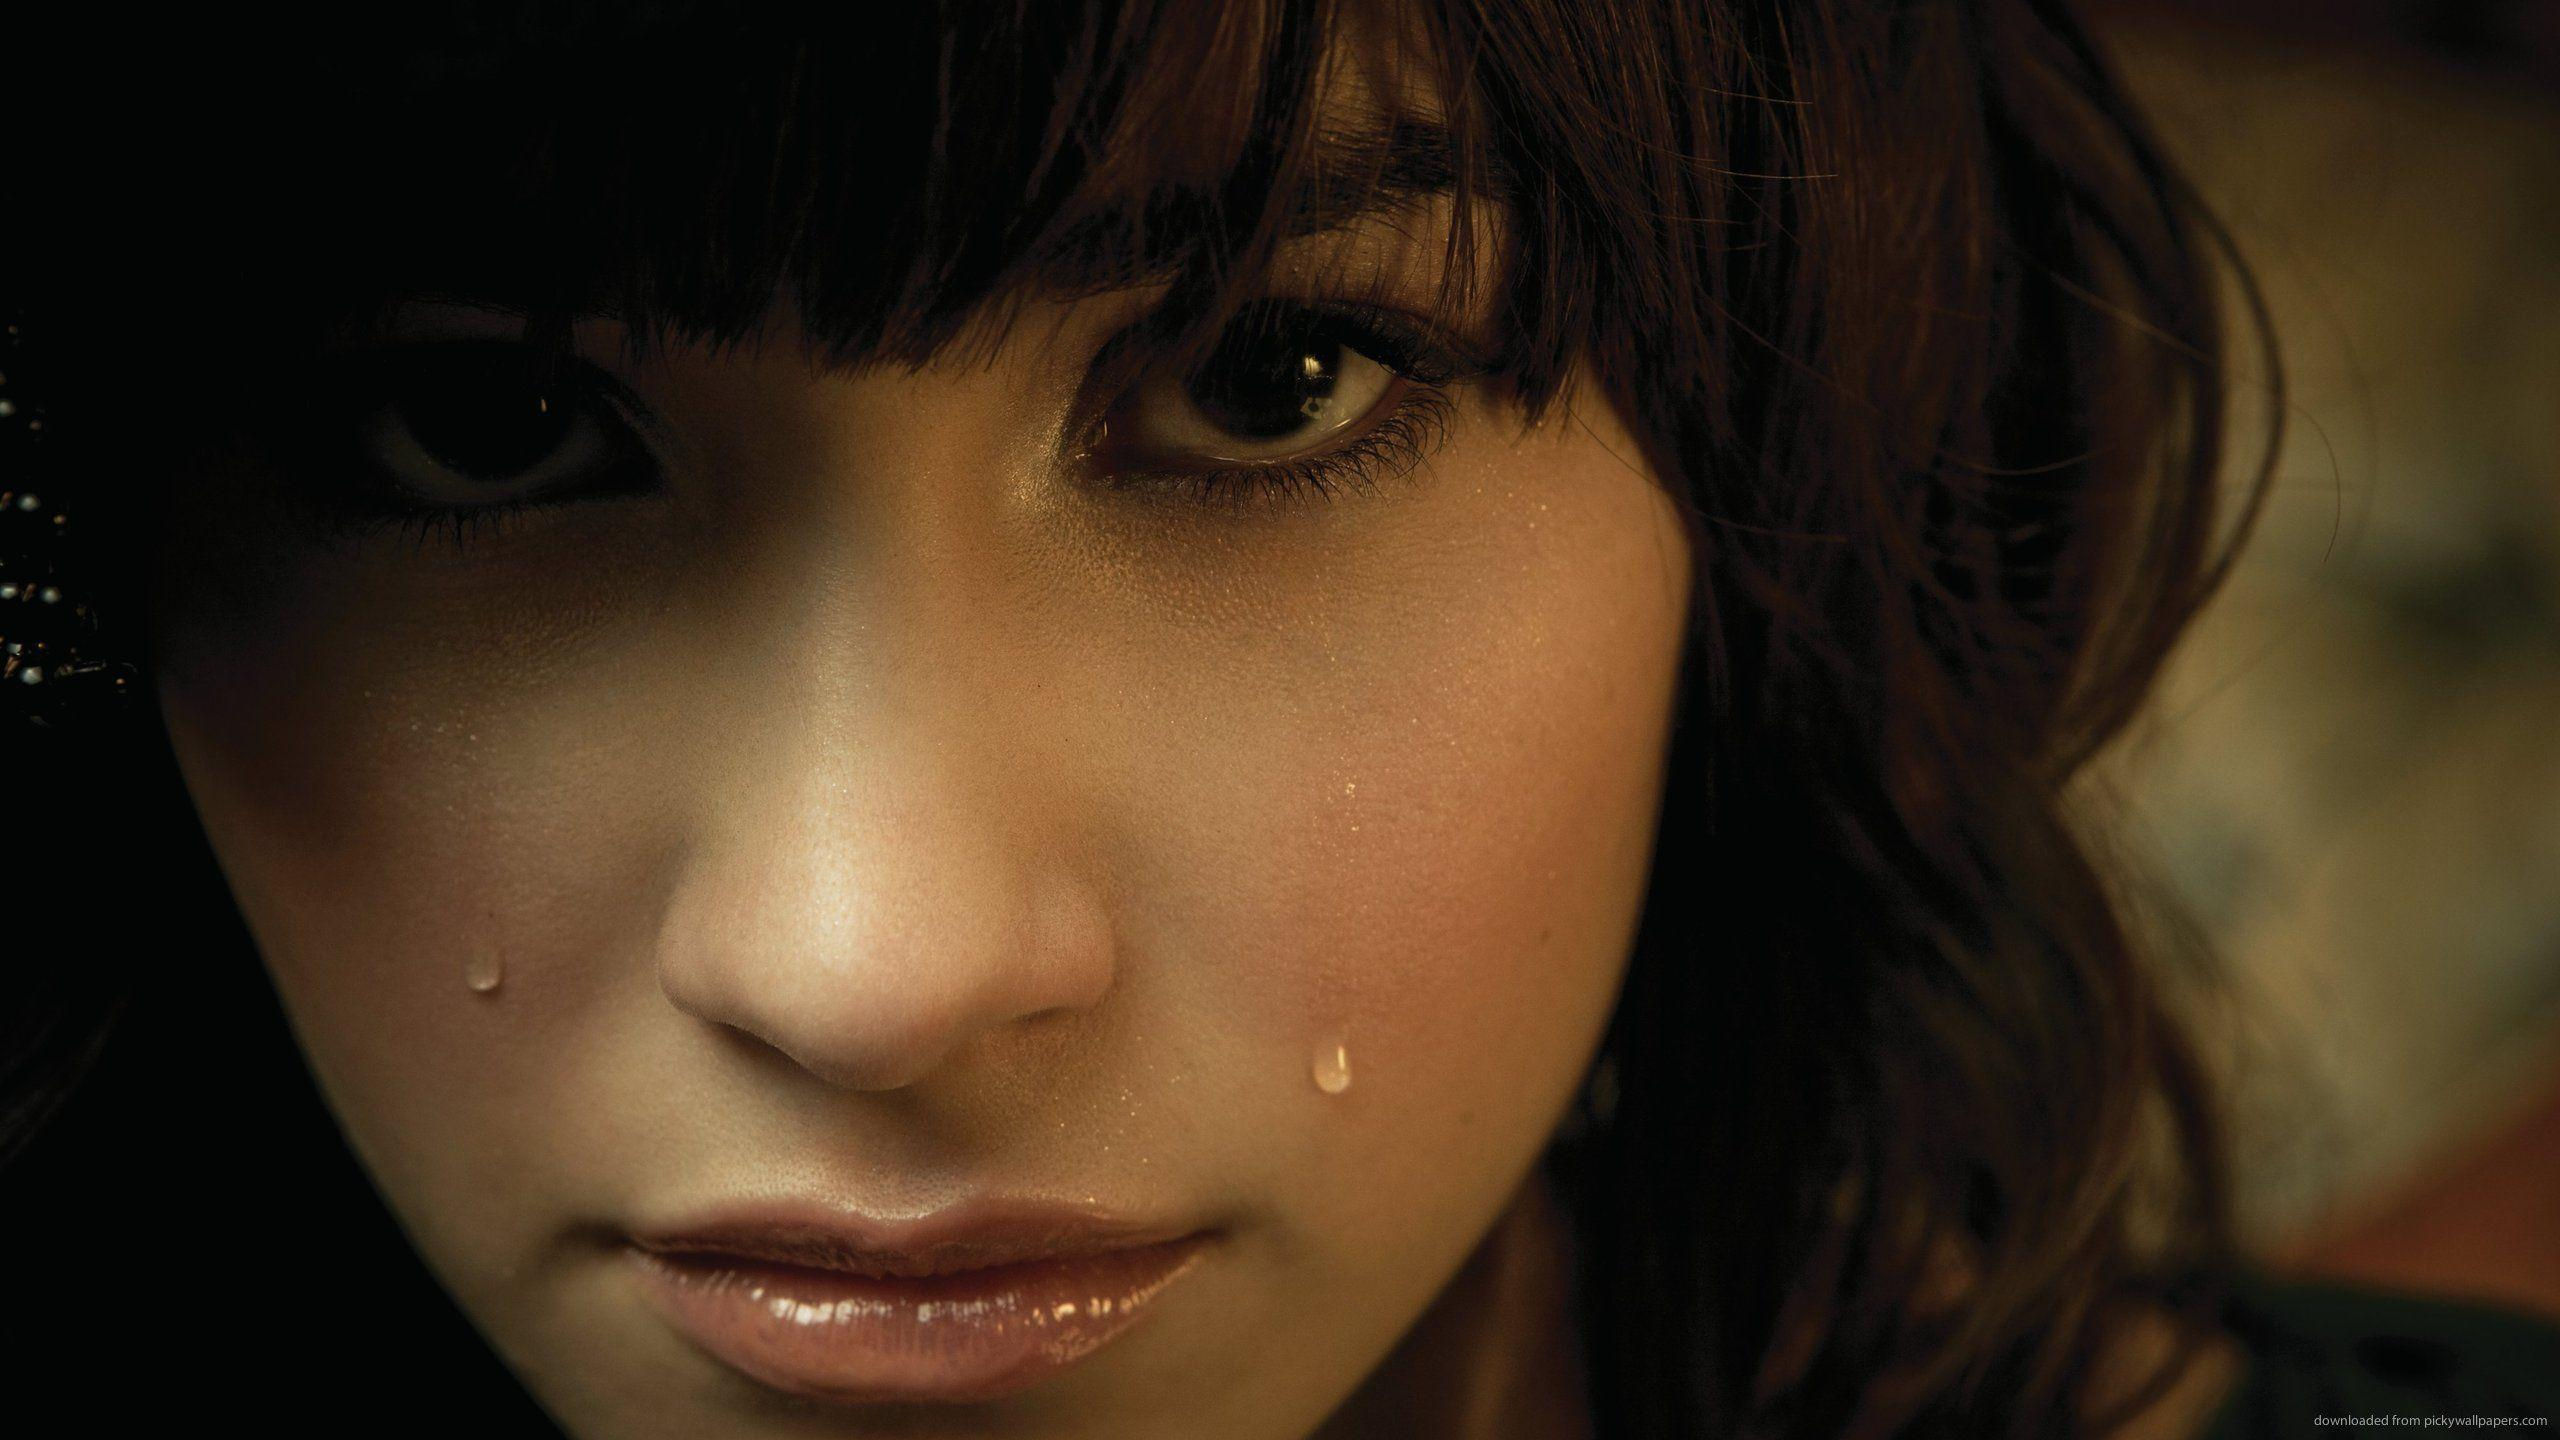 Download 2560x1440 Demi Lovato Crying Wallpapers